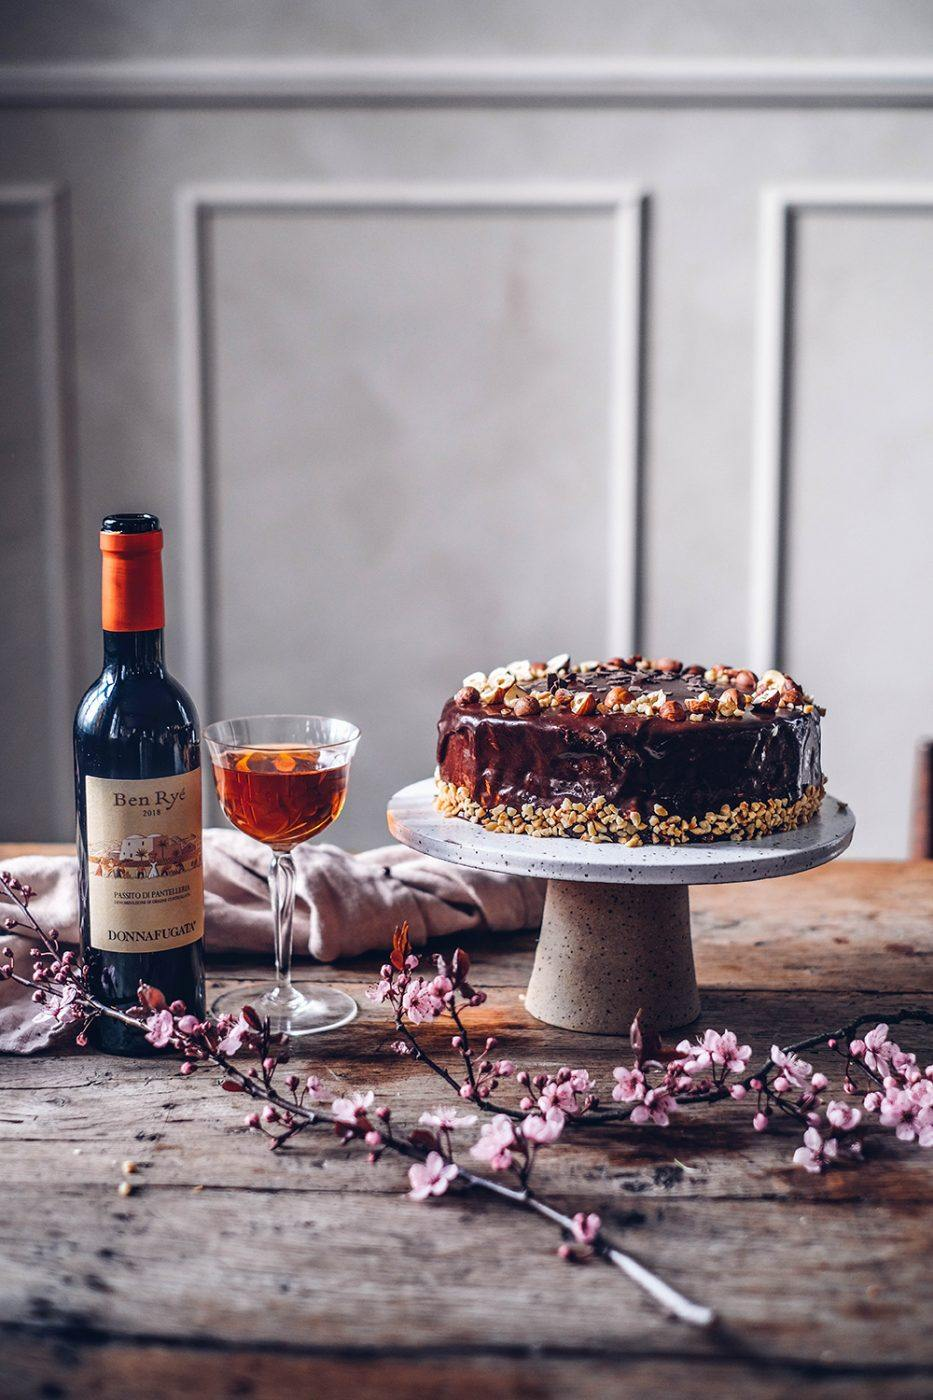 Image for Gluten-free Chocolate Mousse Cake